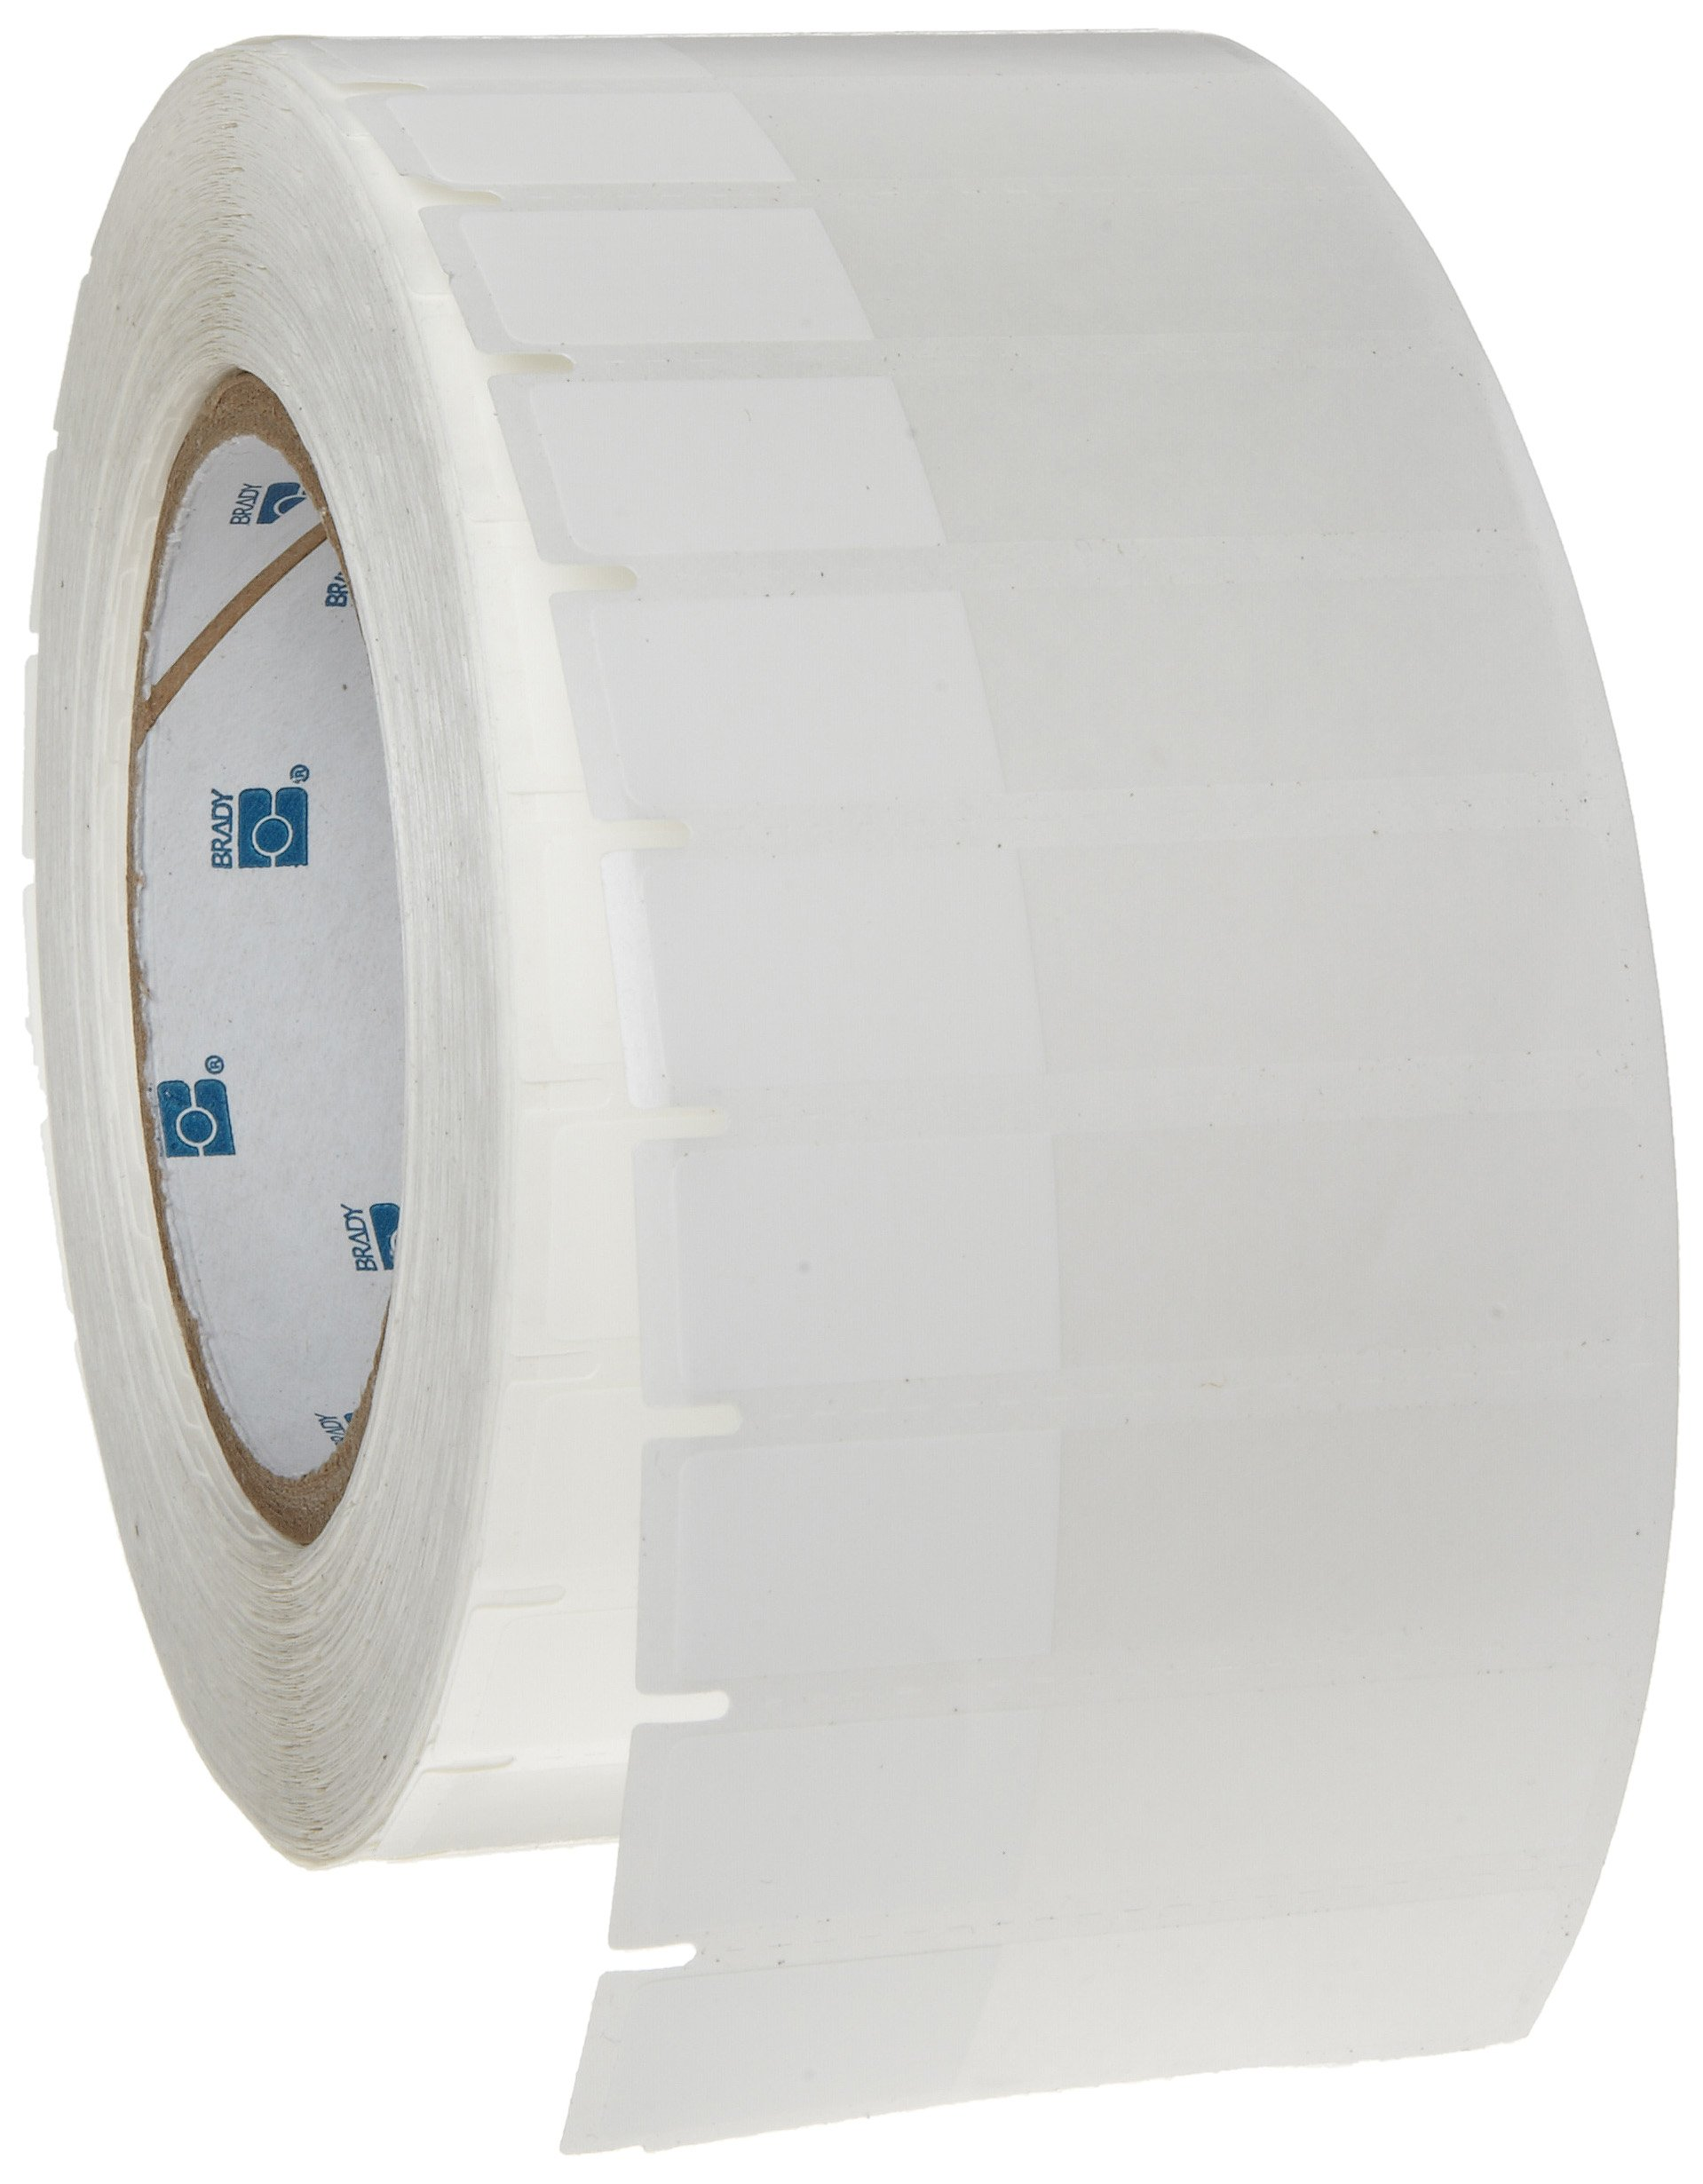 Brady THT-153-461-3 2.625'' Width x 0.6'' Height, B-461 Self-Laminating Polyester, Matte Finish White/Translucent Thermal Transfer Printable Label (3000 per Roll)